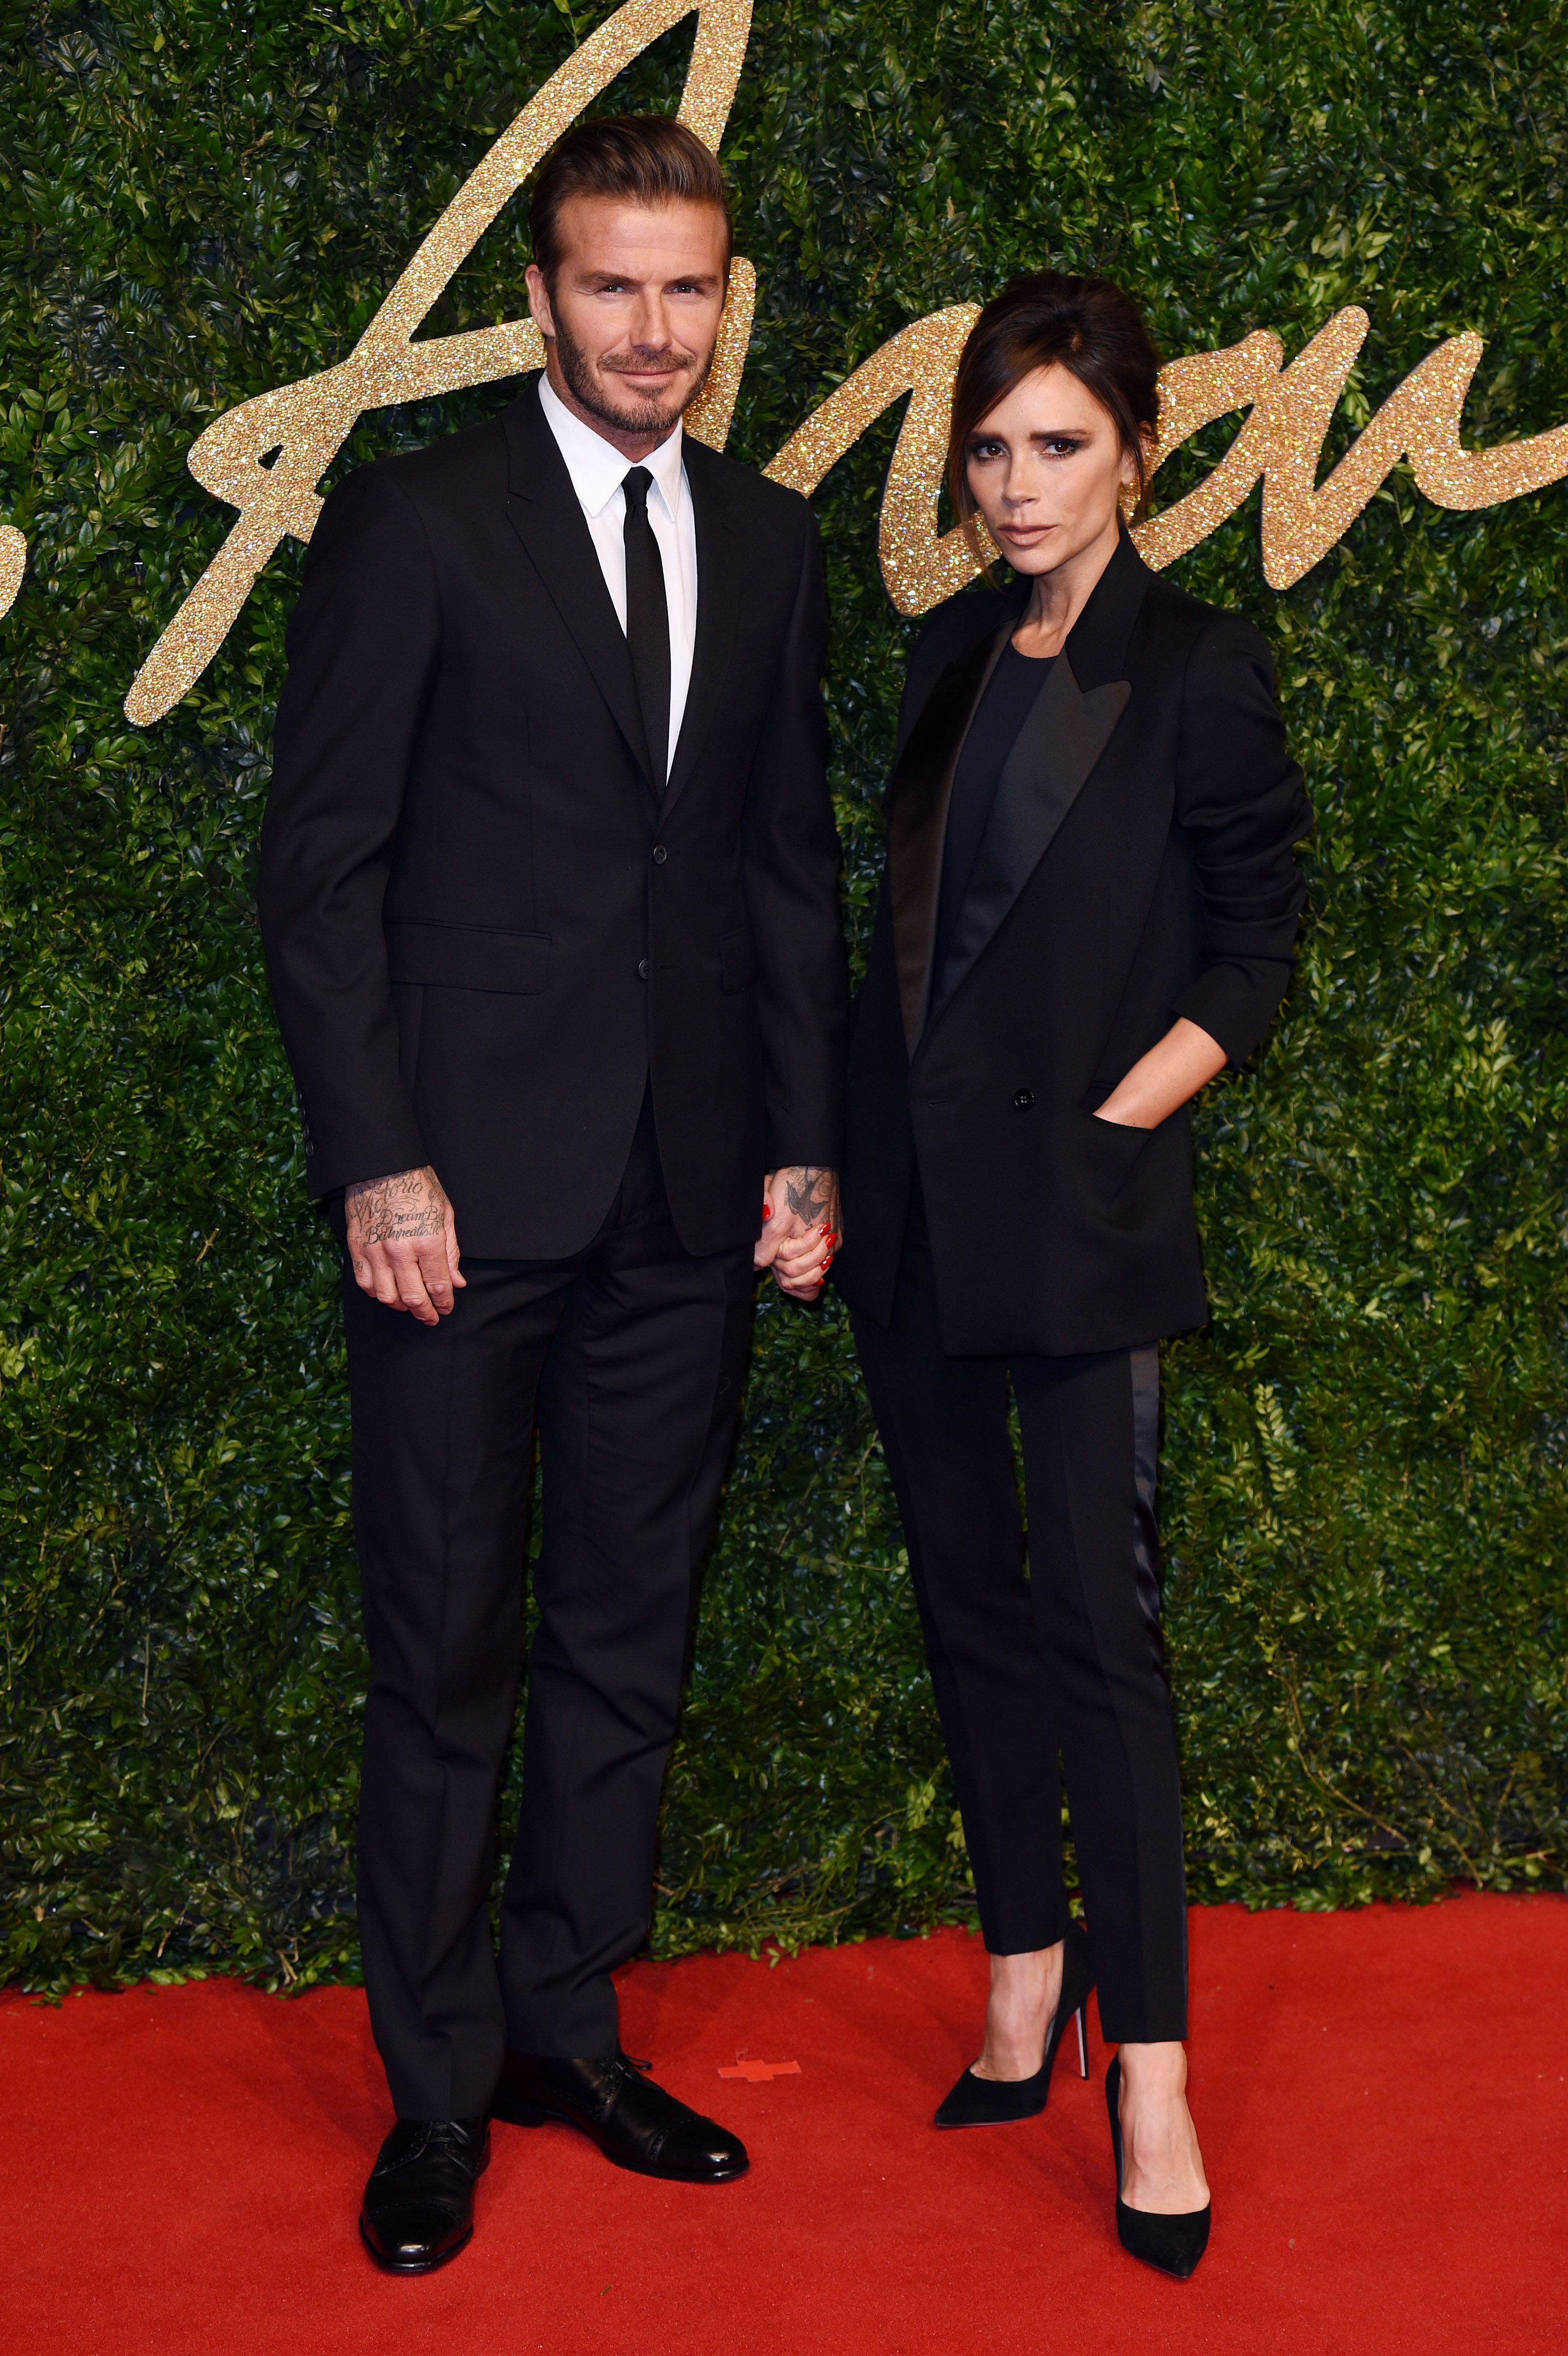 COMPLICATED: David Beckham Lifts The Lid On 'Complicated' Marriage To Wife